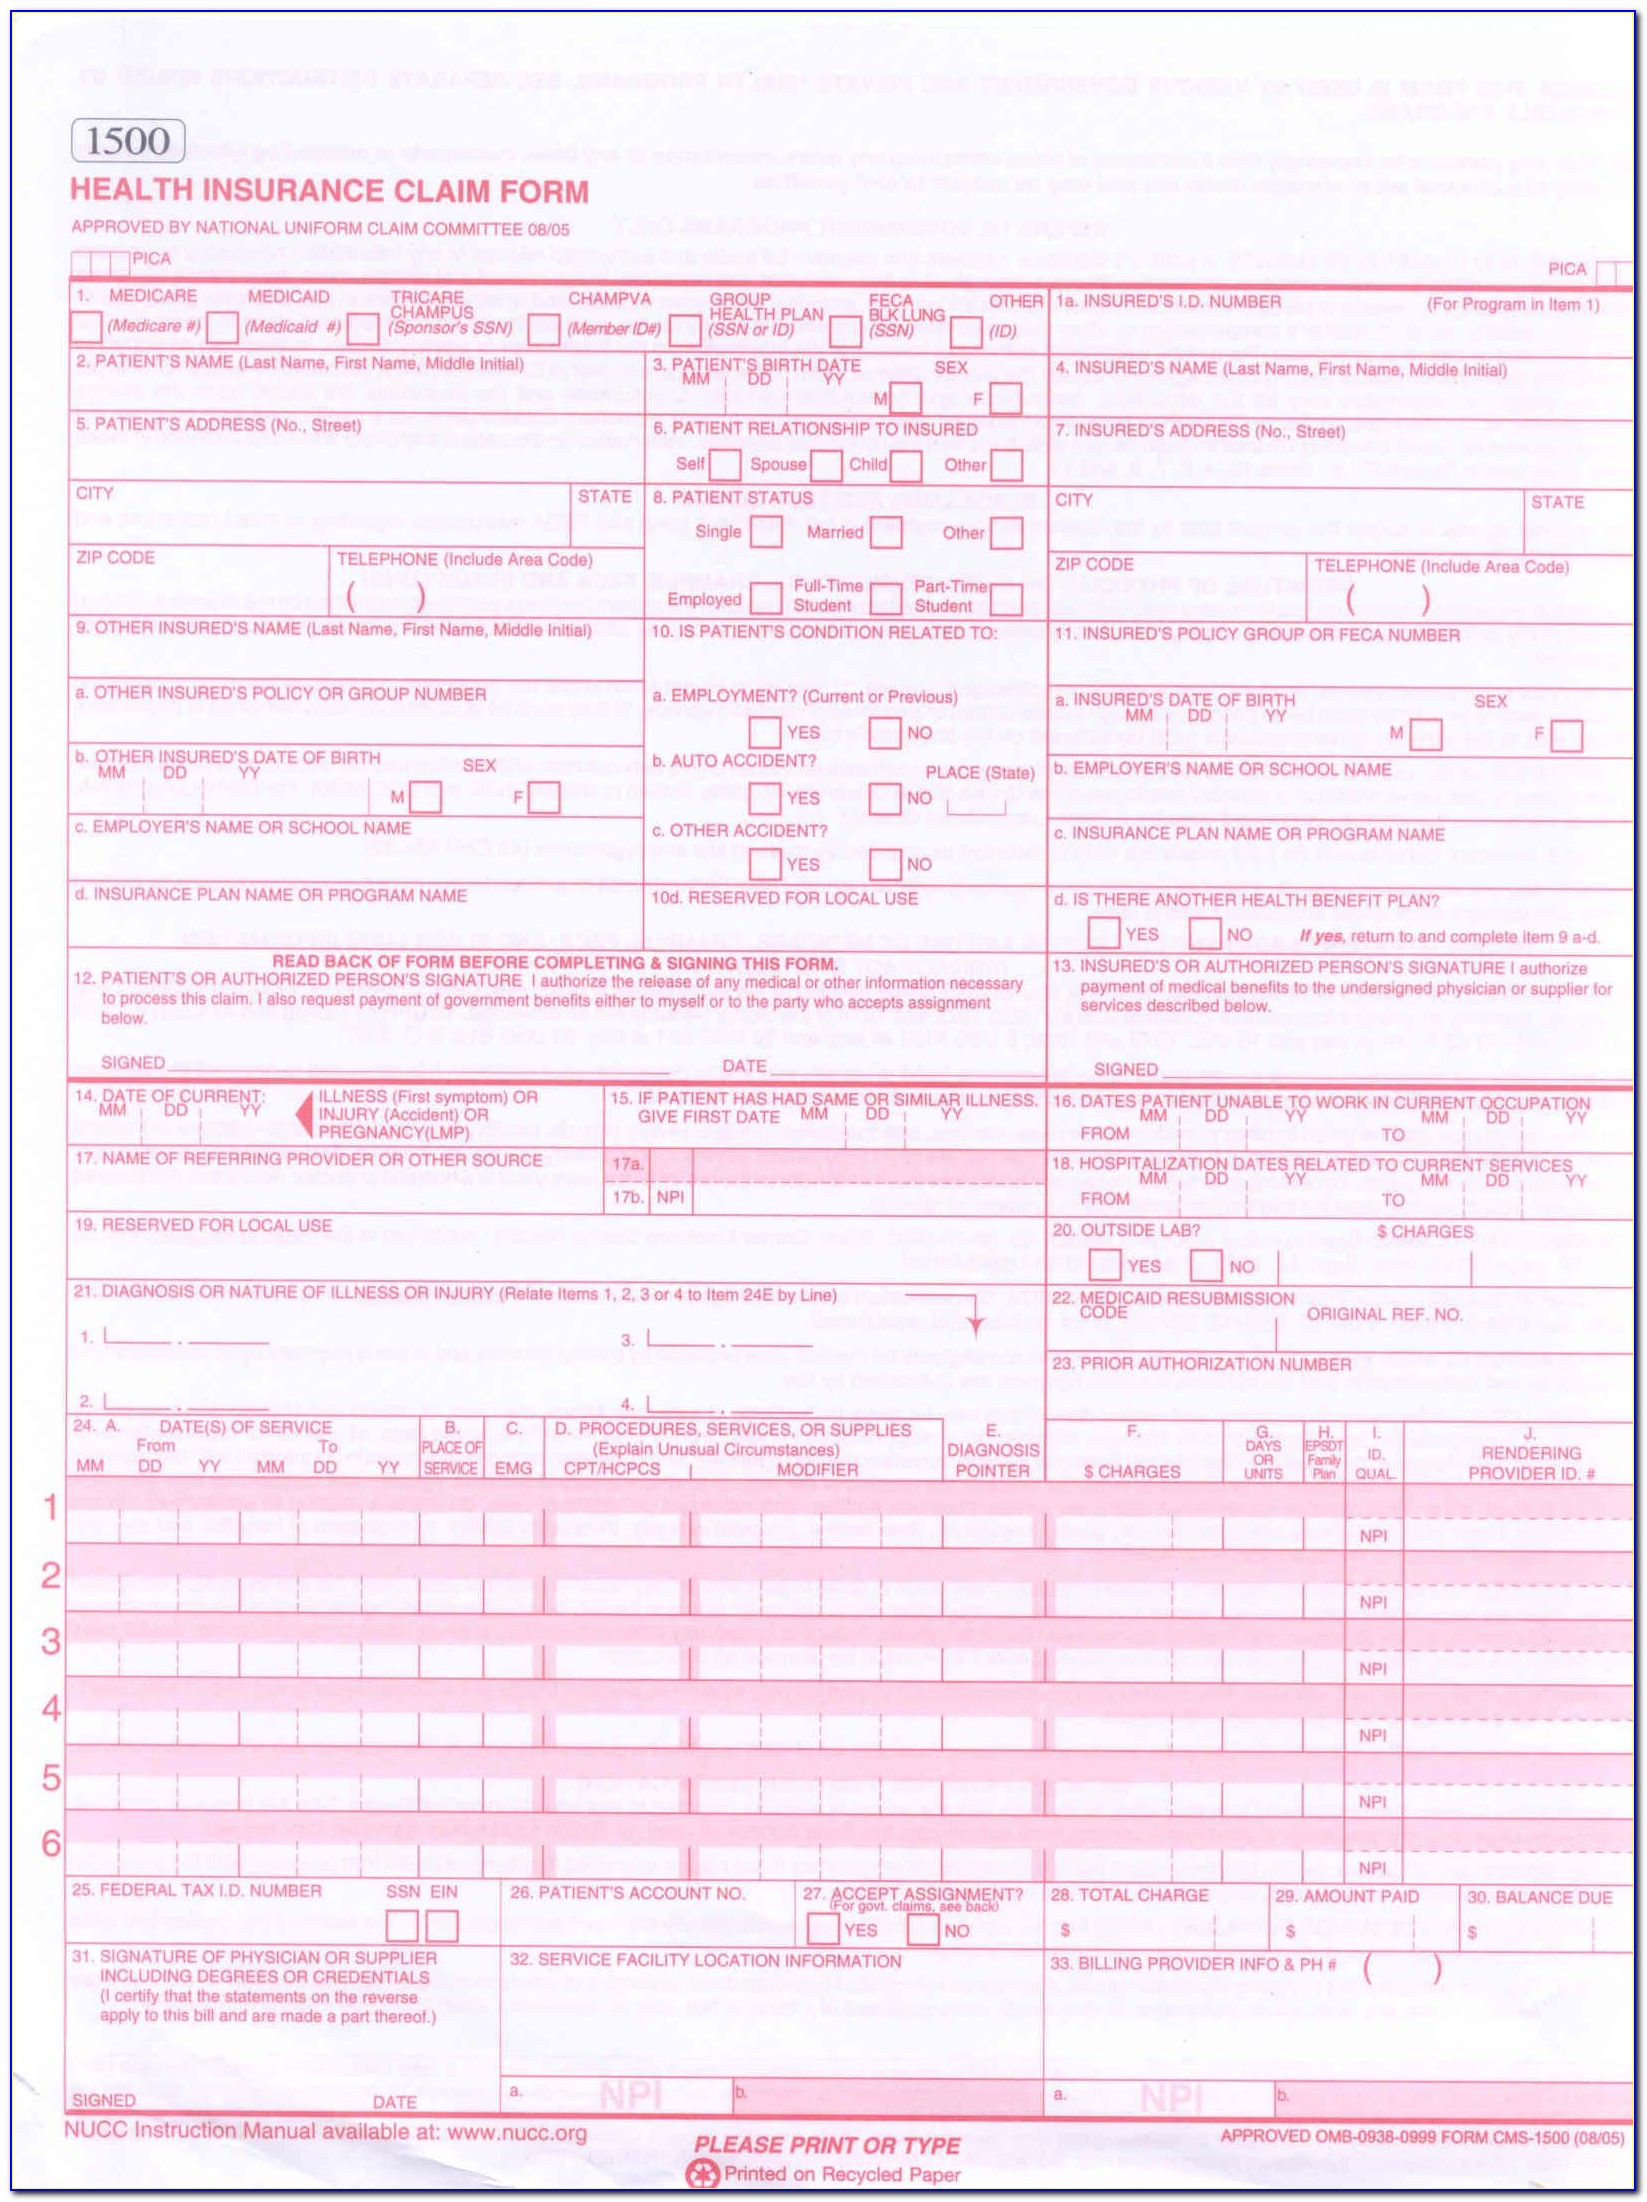 The Ub 04 Billing Form Is Used By